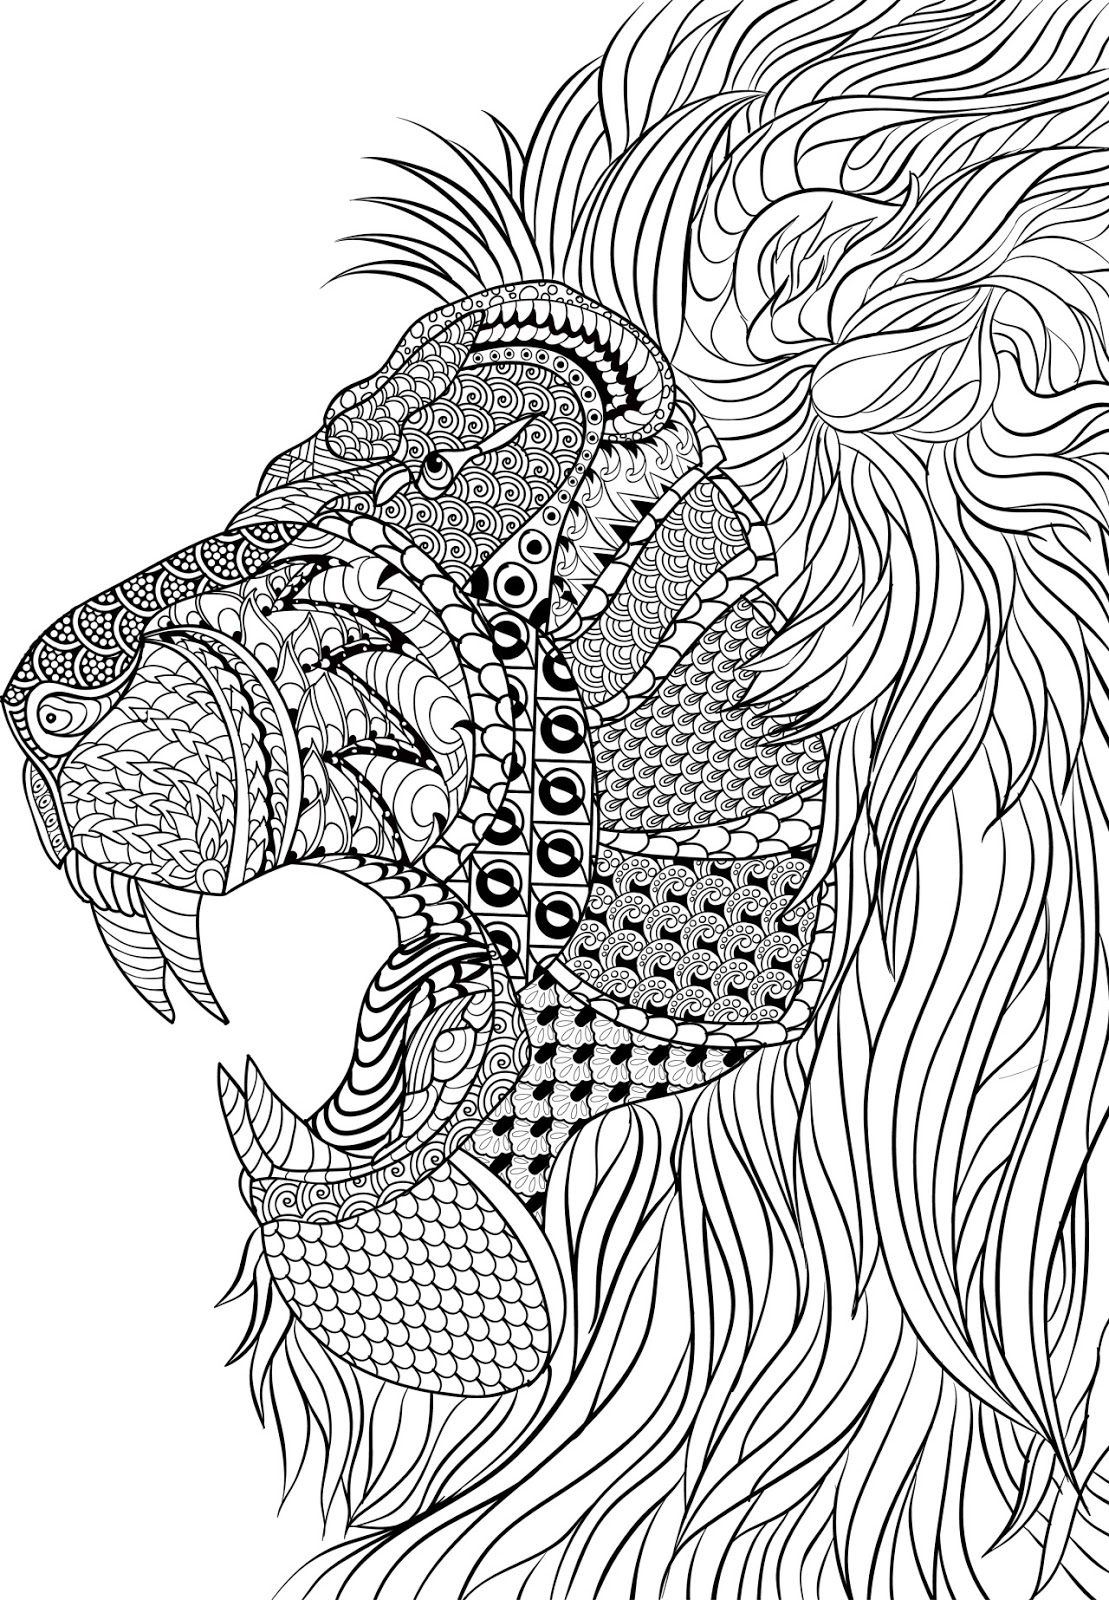 The Restorative Power Of Adult Coloring How Coloring Can Relieve